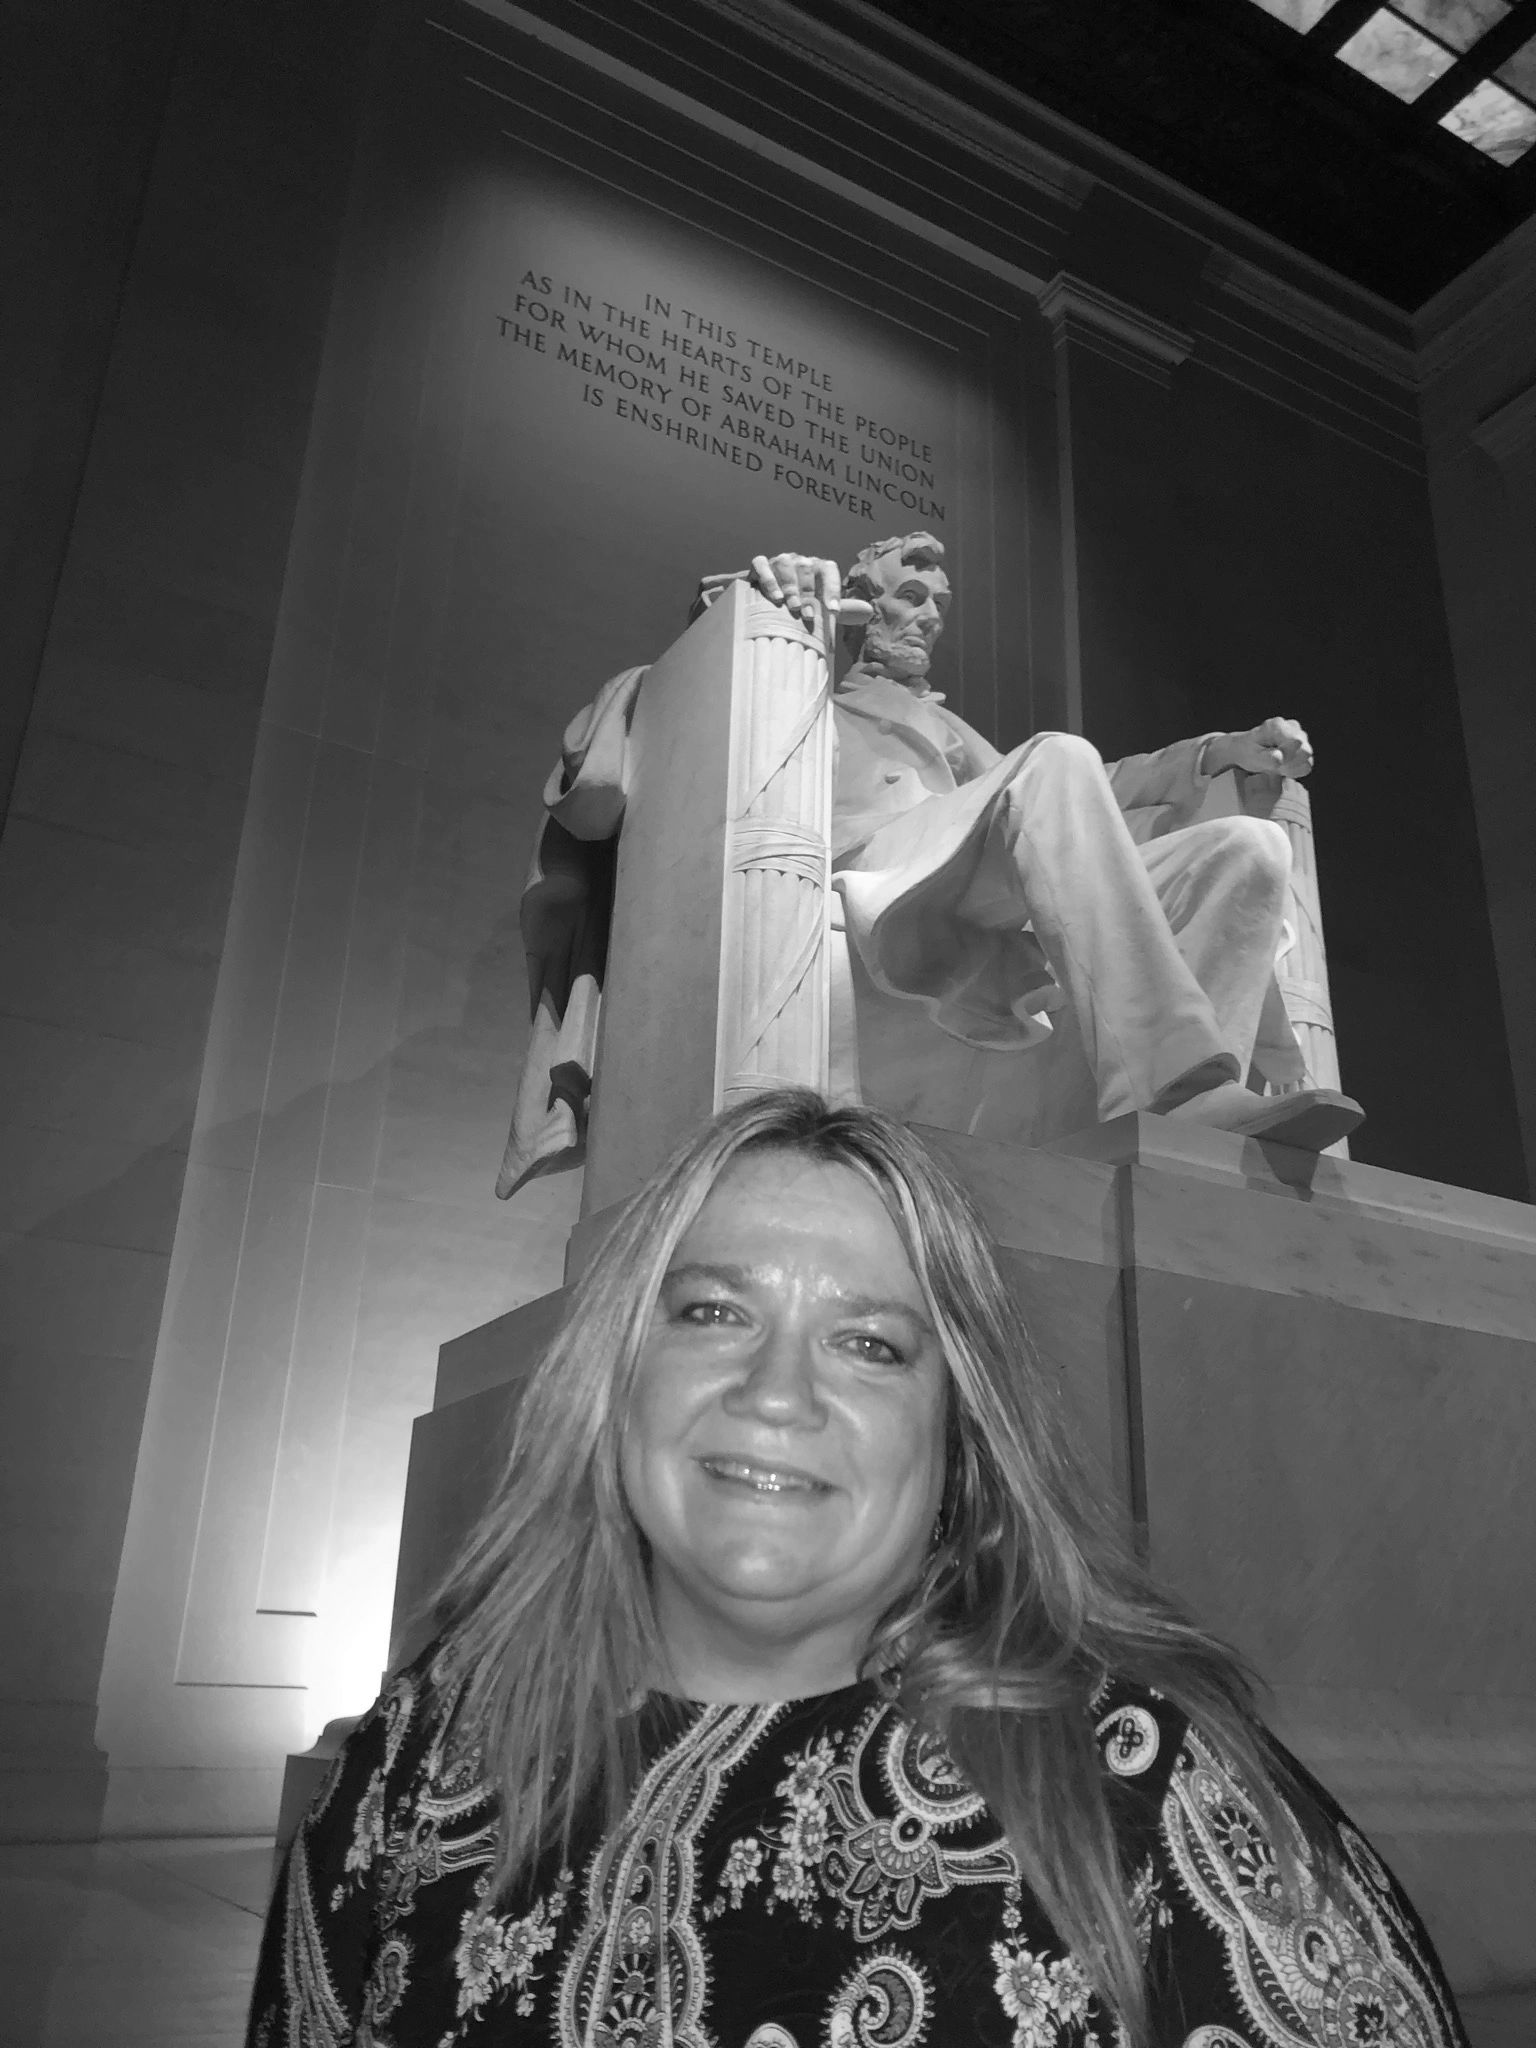 Dottie Laster at the Lincoln Memorial in Washington, D.C.